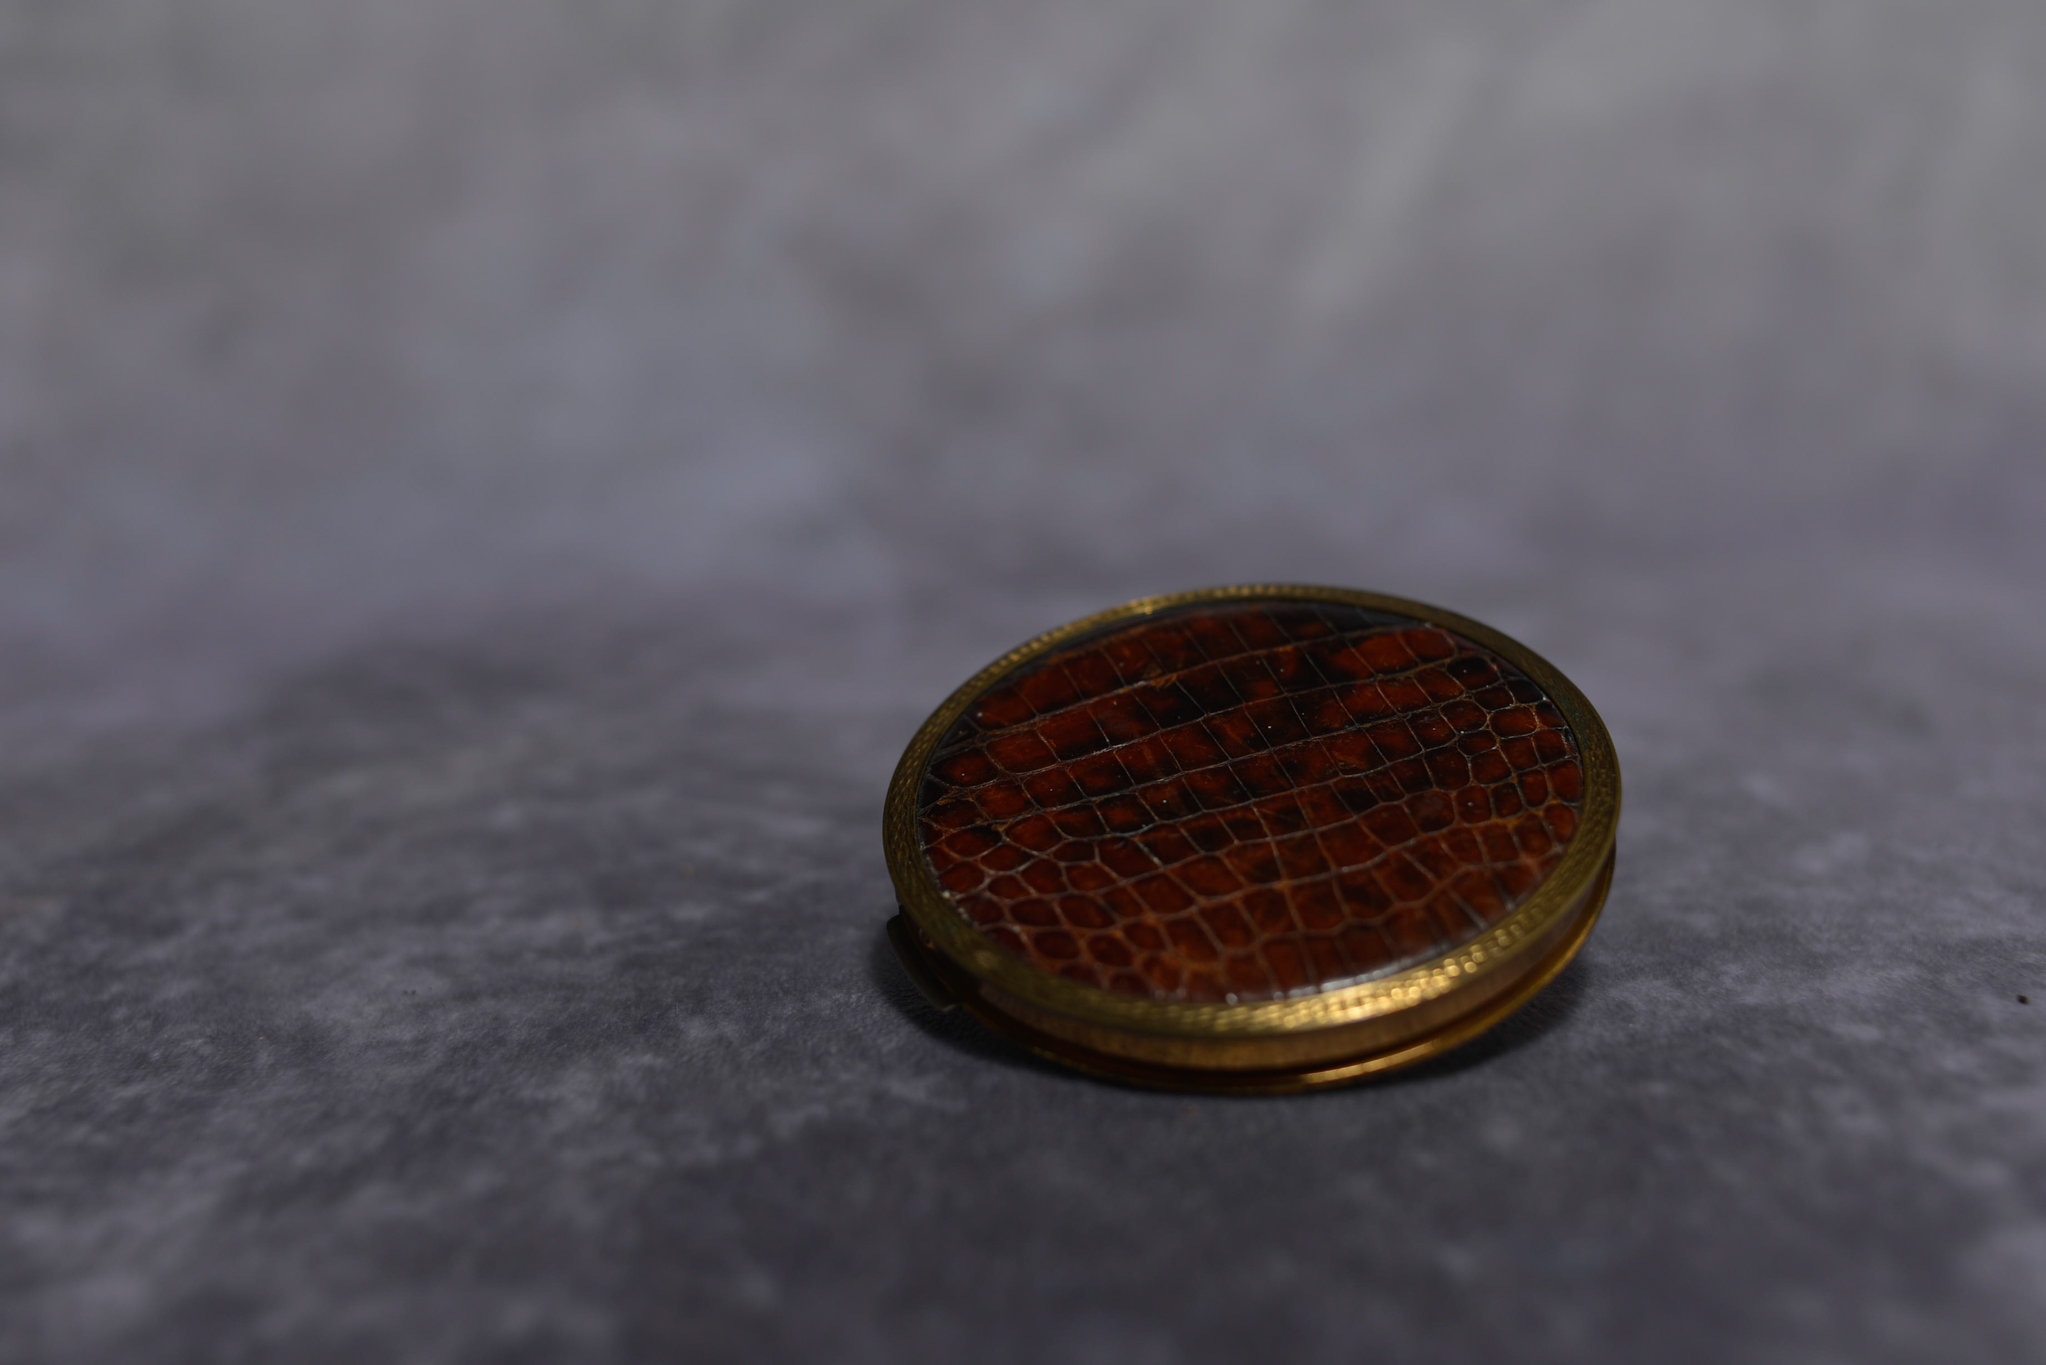 Lot 37 - Vintage compact mirror, faux snake skin powder compact, retro compact mirror